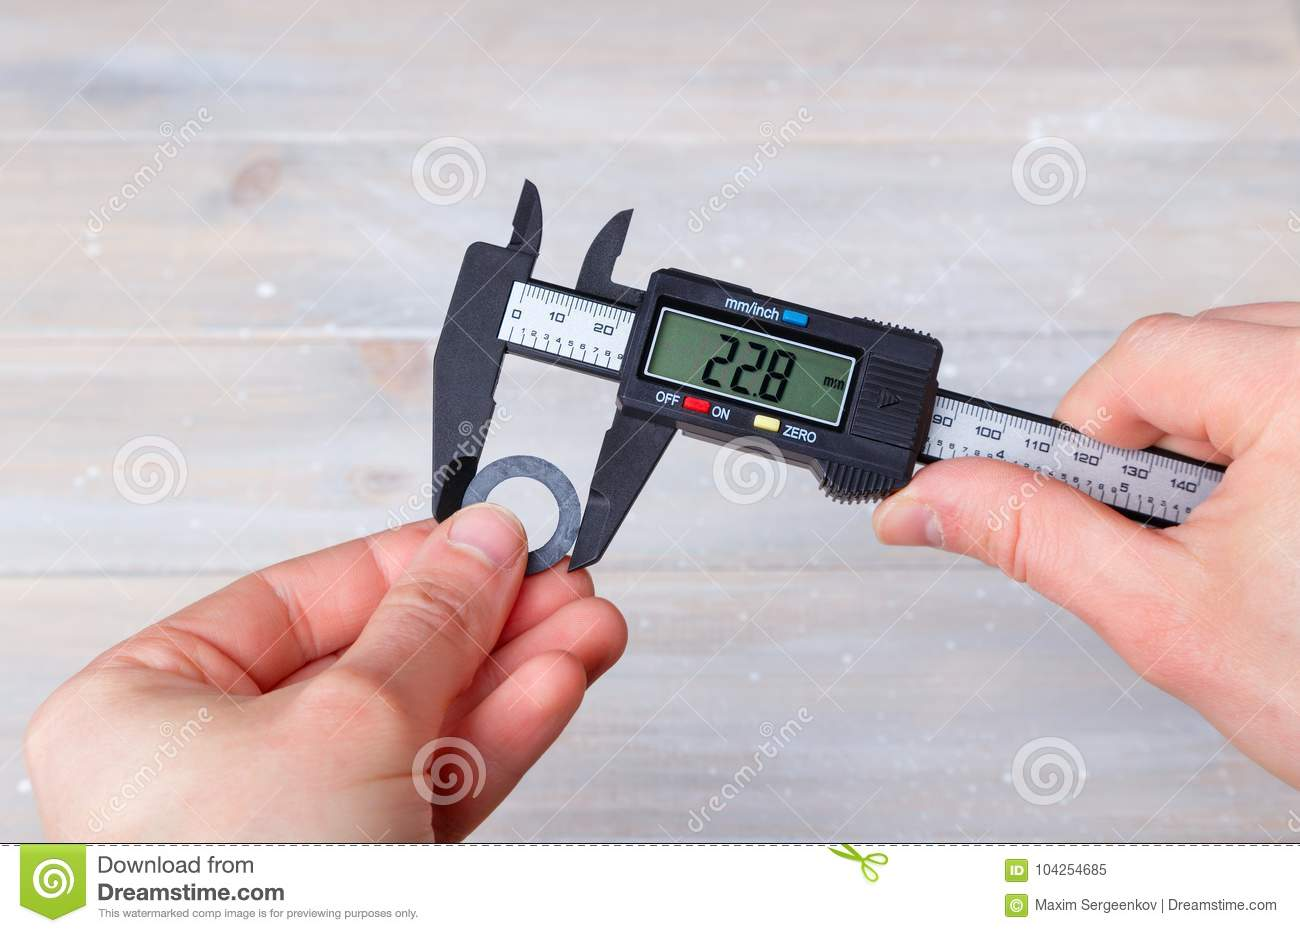 Measurement with electronic caliper